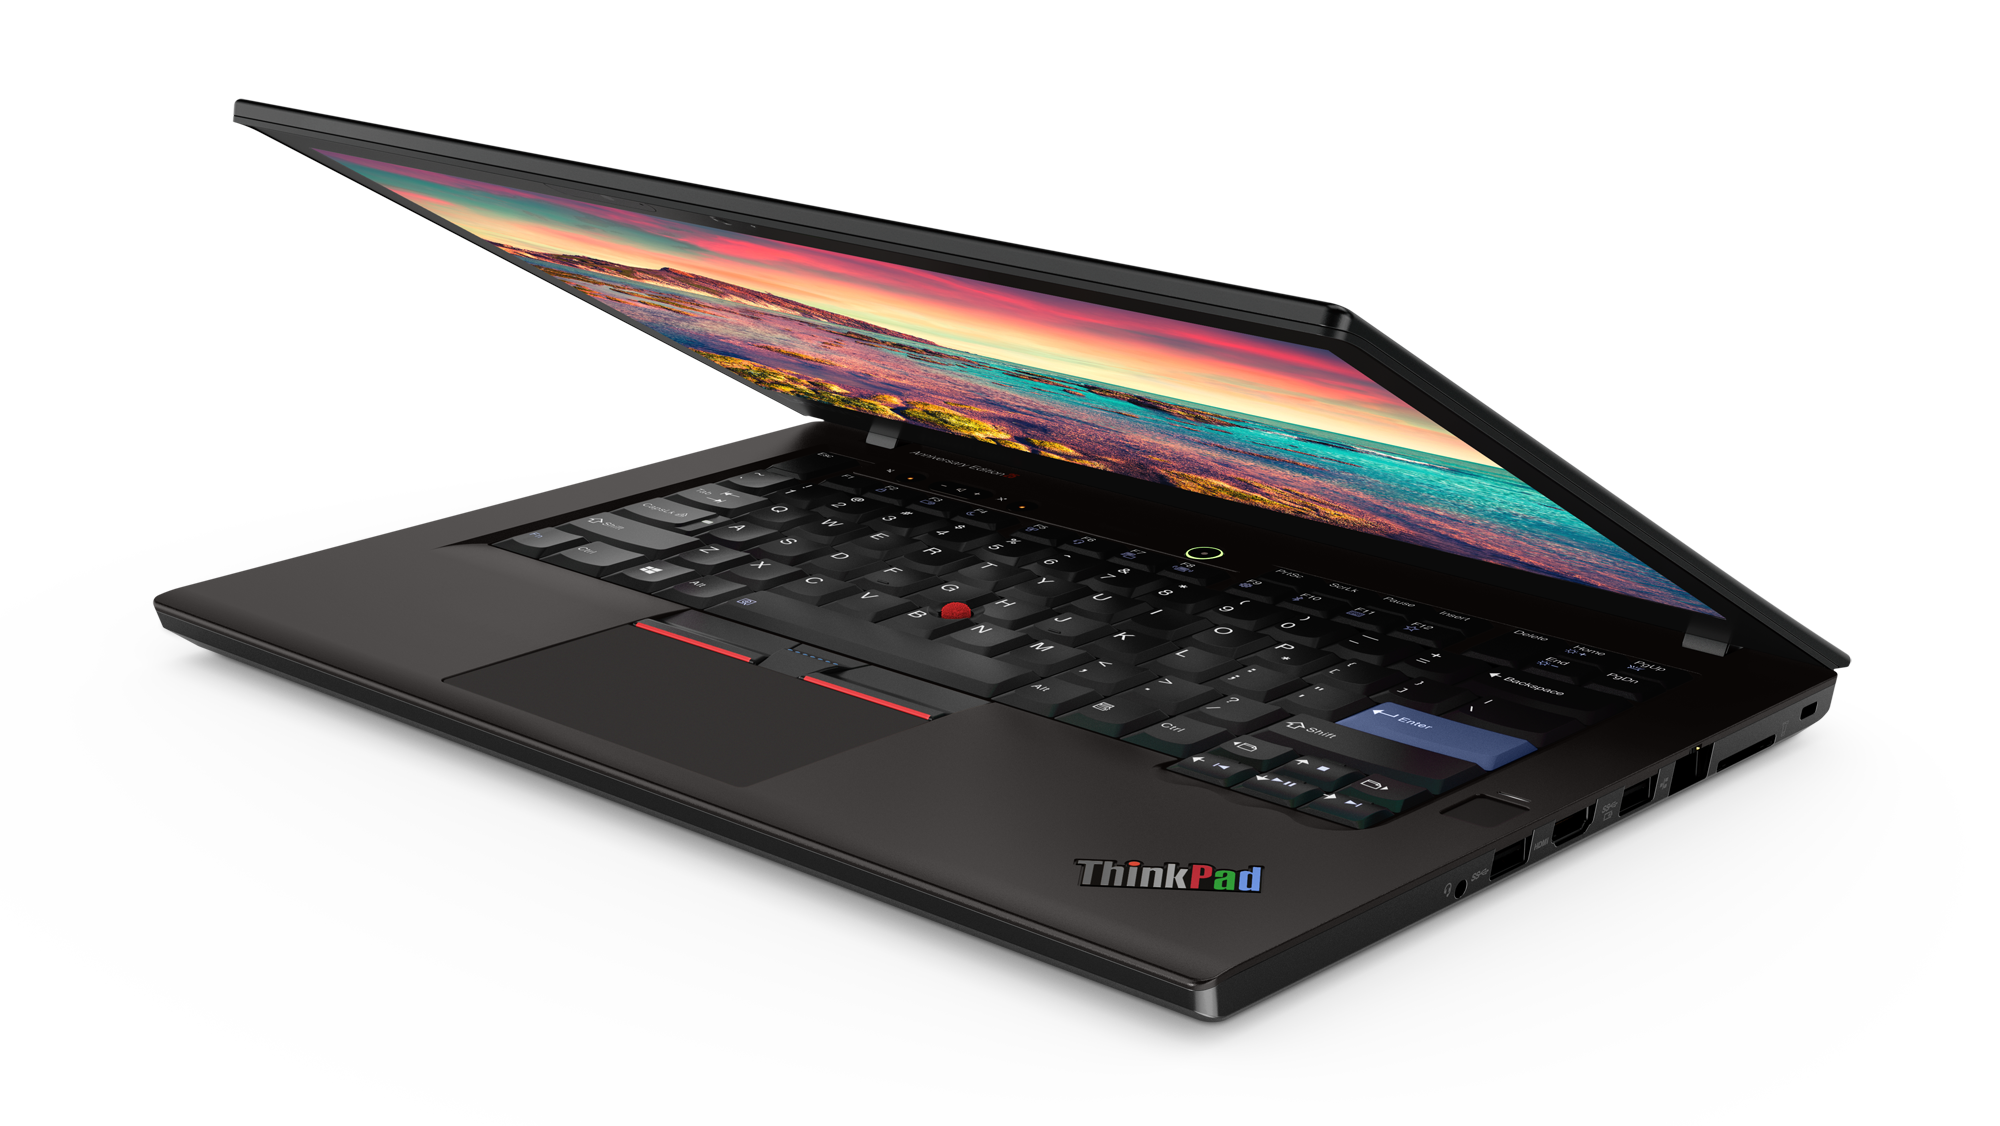 Lenovo ThinkPad Anniversary Edition 25 unveiled